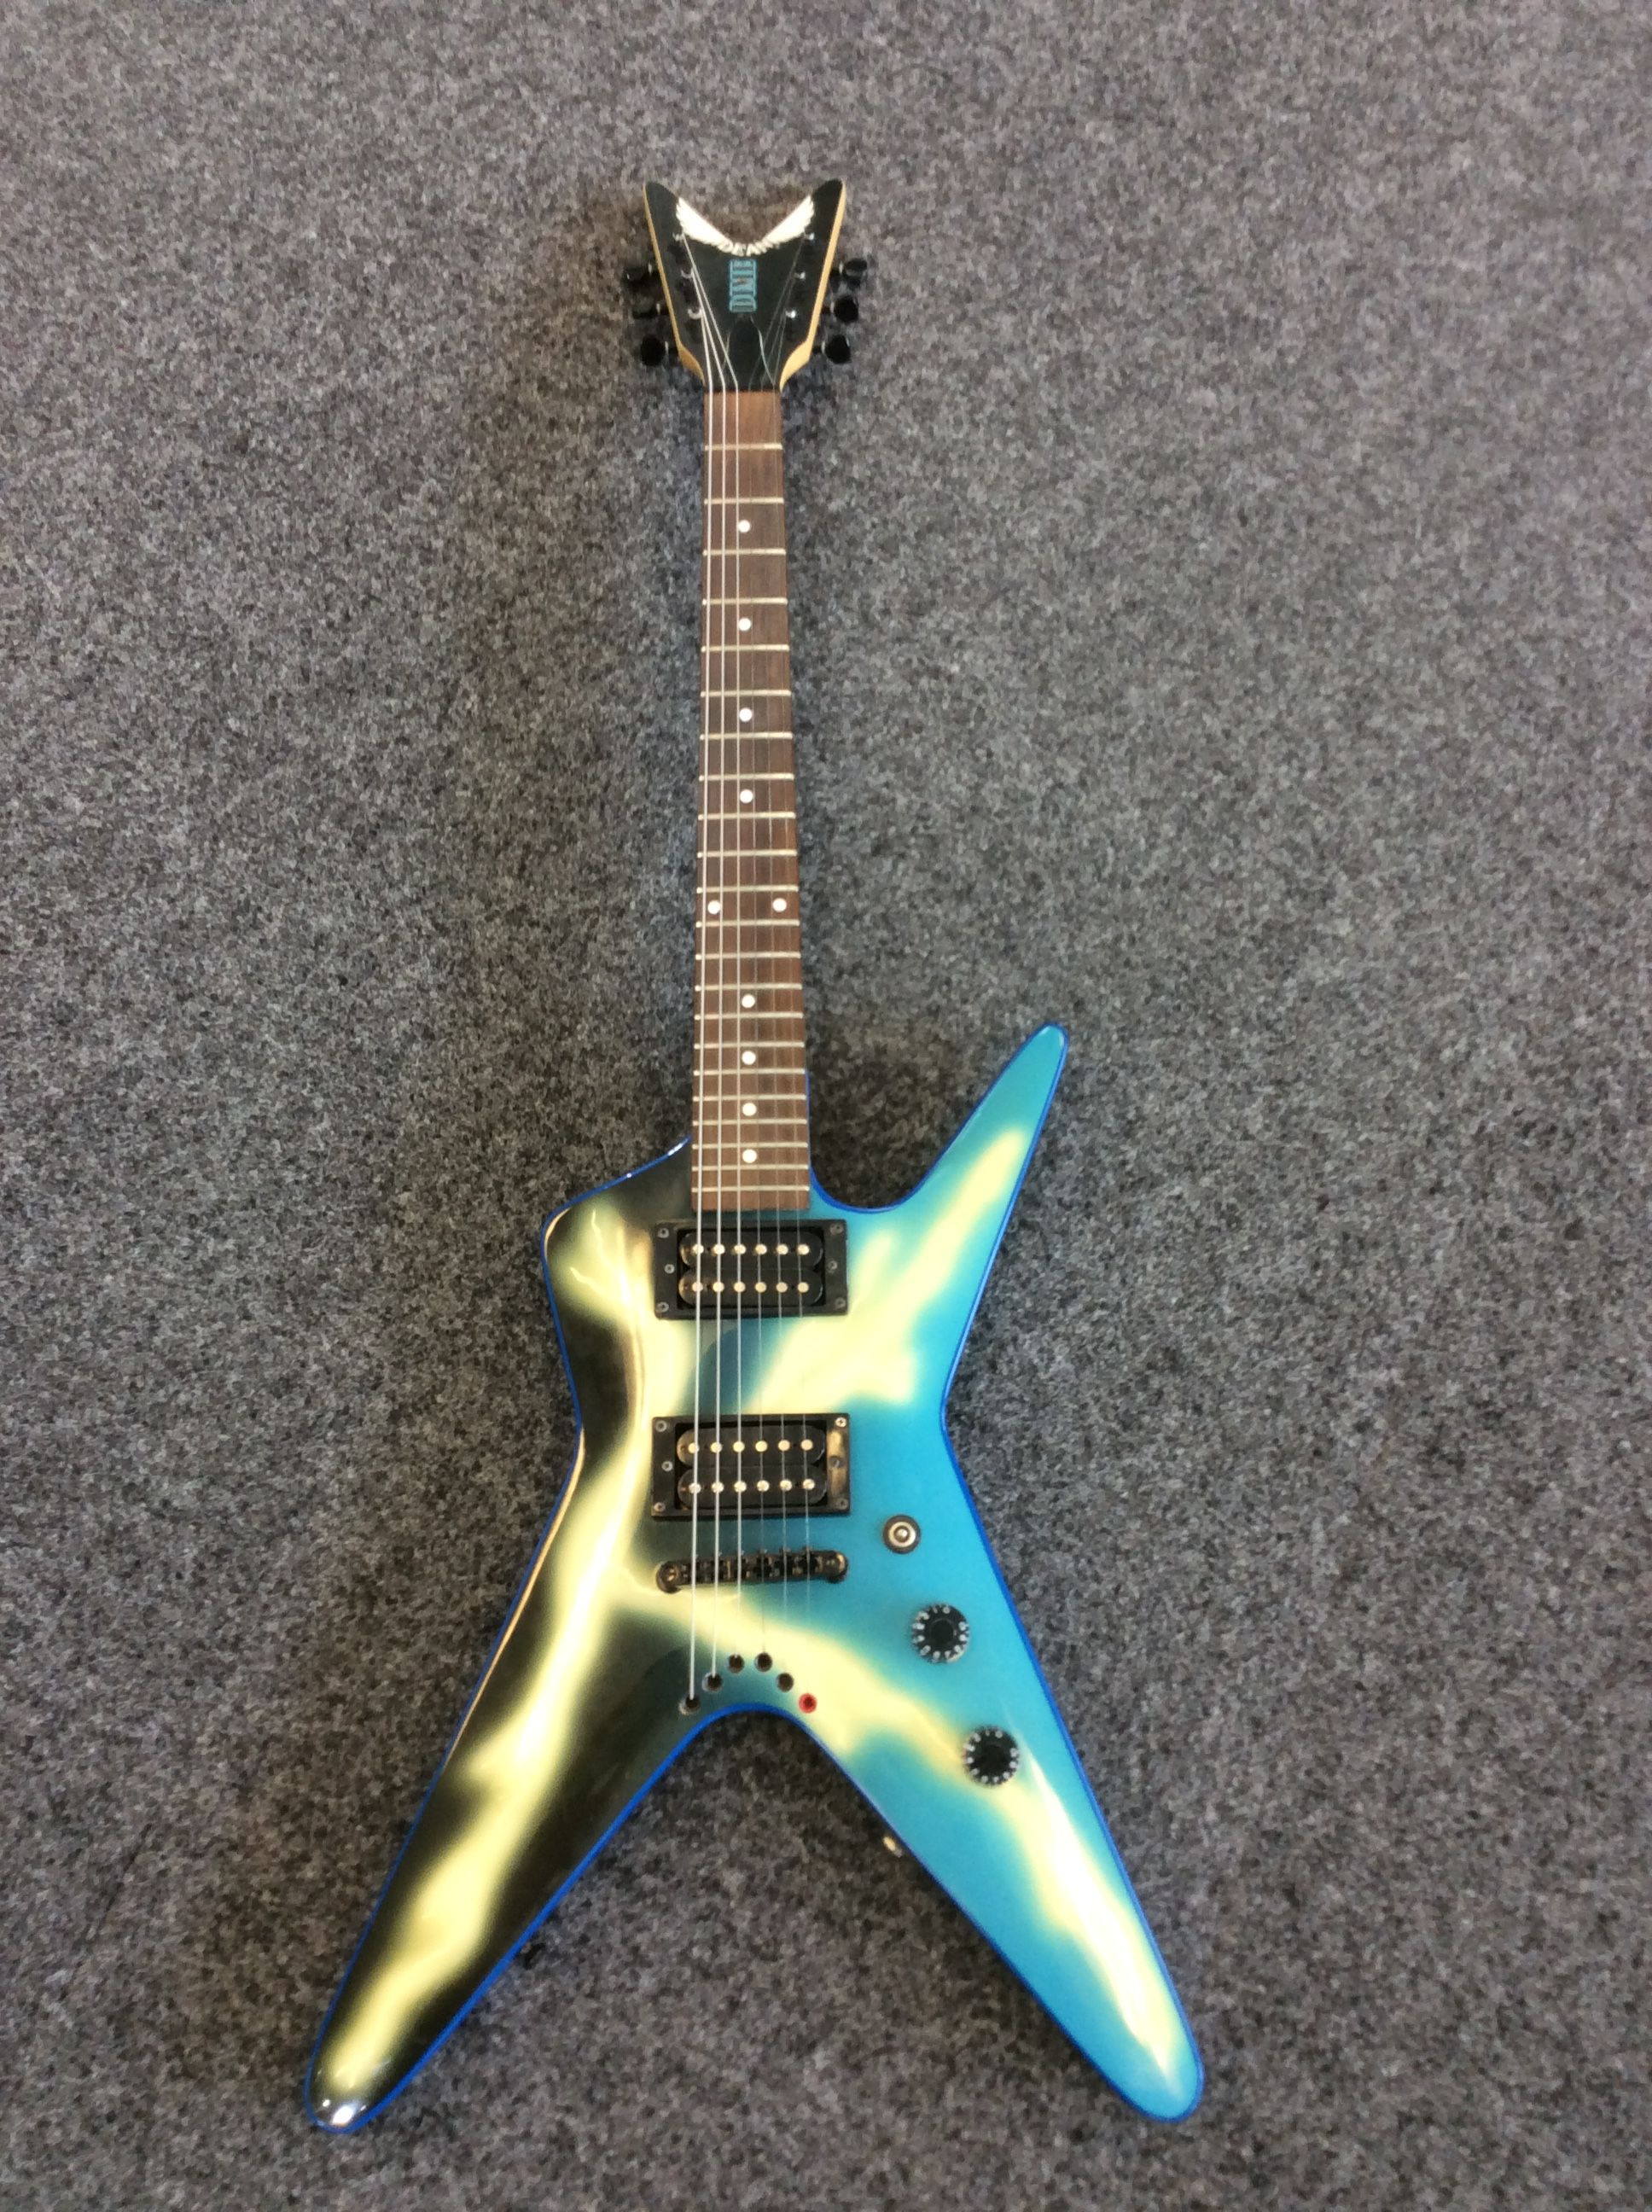 dean from hell dimebag darrell mini baby ml lightning bolt electric guitar 3 4 sold sold in. Black Bedroom Furniture Sets. Home Design Ideas